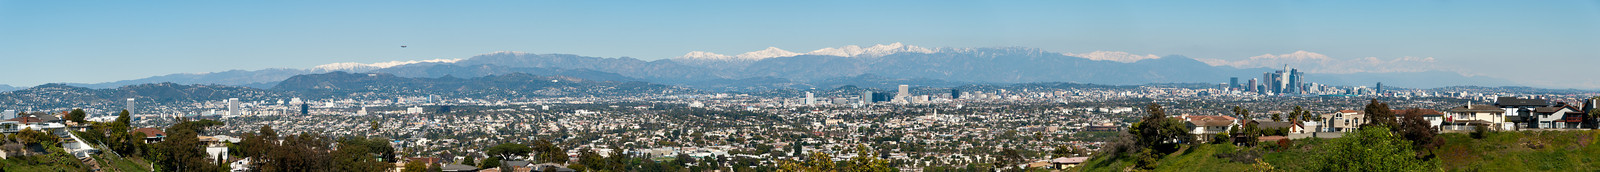 __02/27/11__ Los Angeles Panorama This is an 11-shot panorama of Los Angeles, taken from Kenneth Hahn State Recreation Area. Many photographers flock to this park to get photos like this after storms when the mountains are covered in snow. There's some atmospheric distortion, but overall I'm pretty happy with the level of detail in this image. Because even SmugMug's X3 size is ill-suited to viewing panoramas of this size, I've put it up on Zoom.it so you can see the details:  http://zoom.it/ZUbD  Here are some things to look for: Hollywood sign, Goodyear blimp (covering the Oscars), Griffith observatory, an enormous T-Mobile ad, a building at Forest Lawn in Glendale, Wilshire Blvd, West Angeles Cathedral, Paramount Studios, a glimpse of USC, and the tallest US building West of the Mississippi.  Find them all and you will WIN!  [last year] so cute...